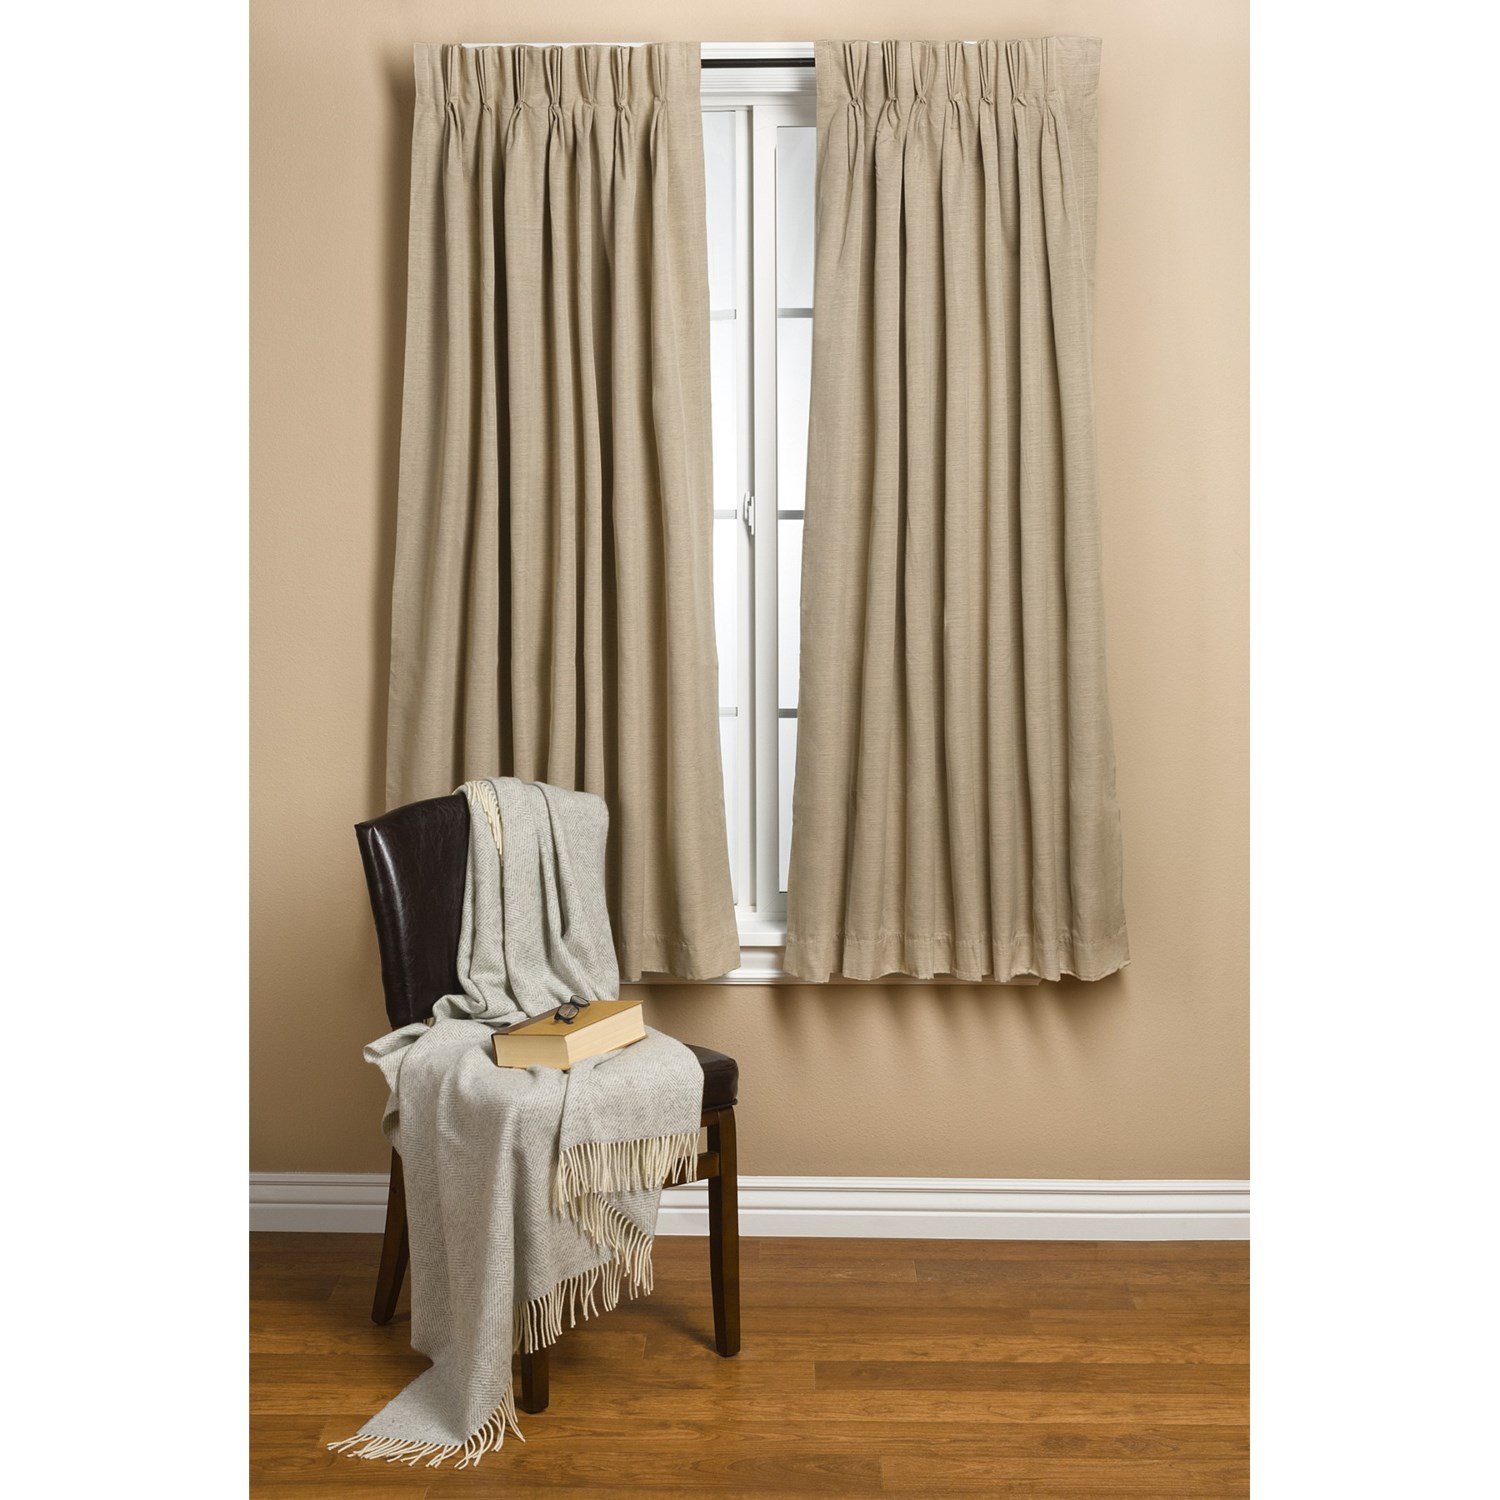 Commonwealth Home Fashions Hotel Chic Blackout Curtains 120x84 Pinch Pleat Save 79